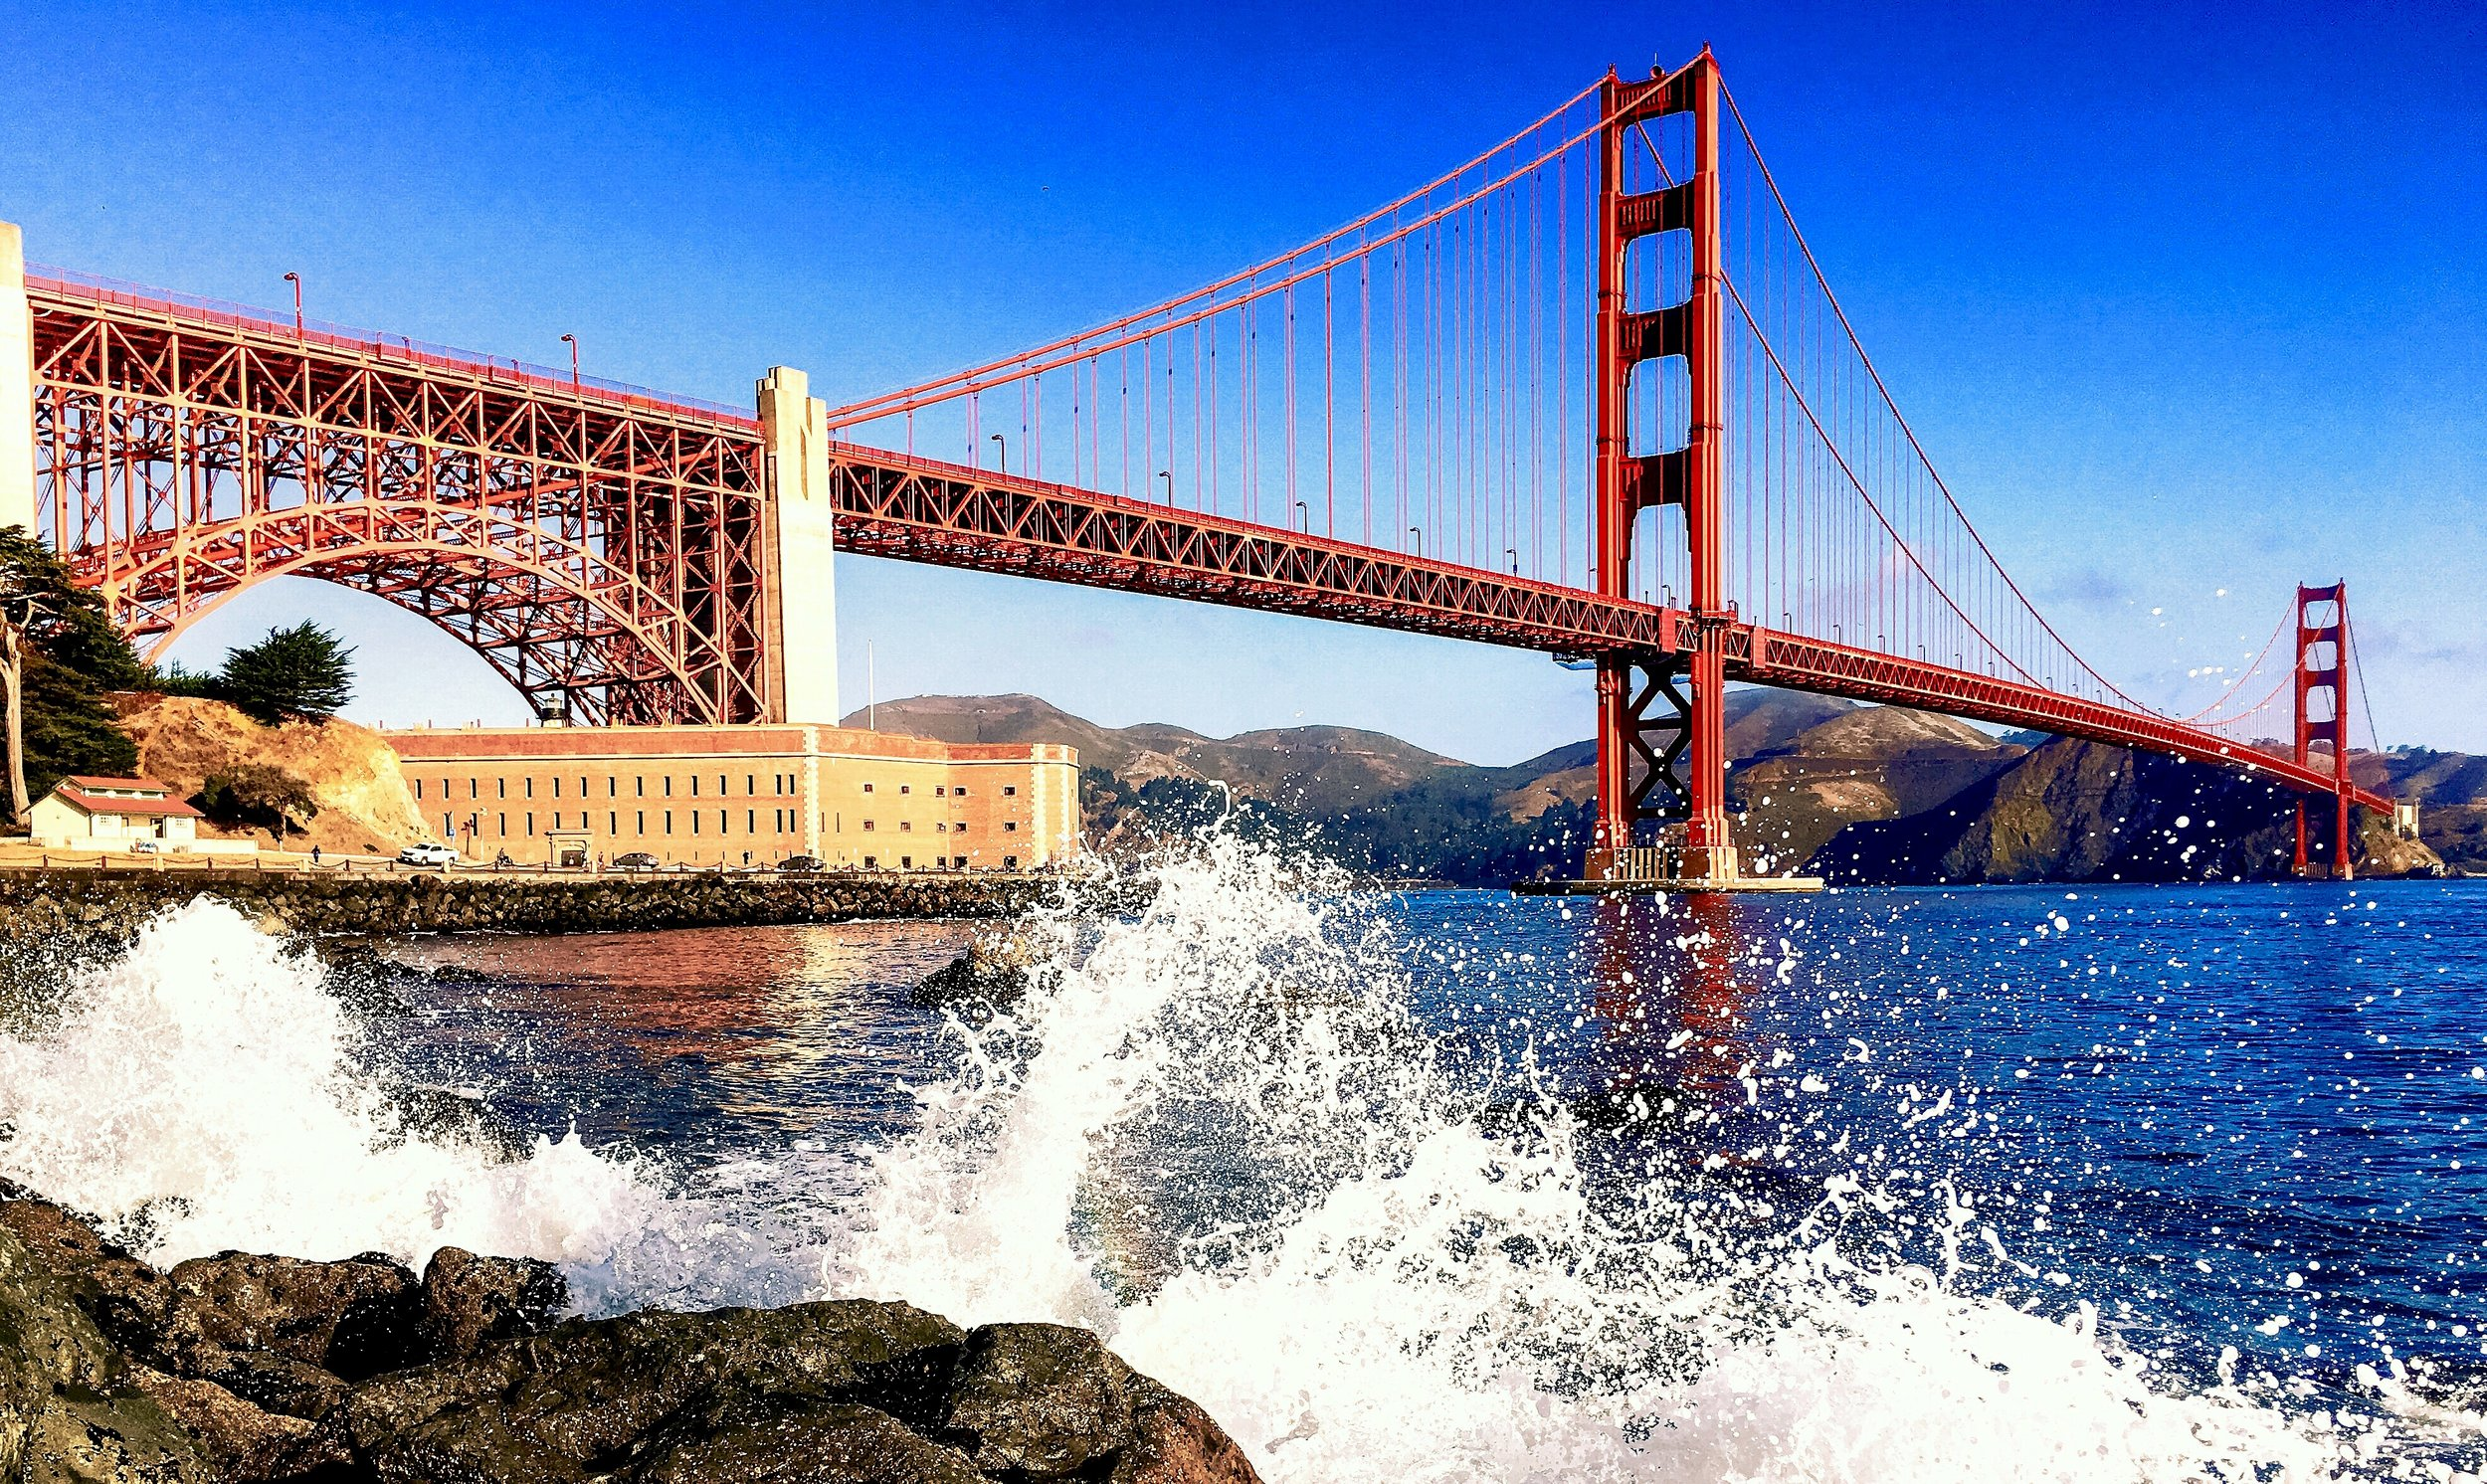 THE GOLDEN GATE BRIDGE - SAN FRANCISCO -USA